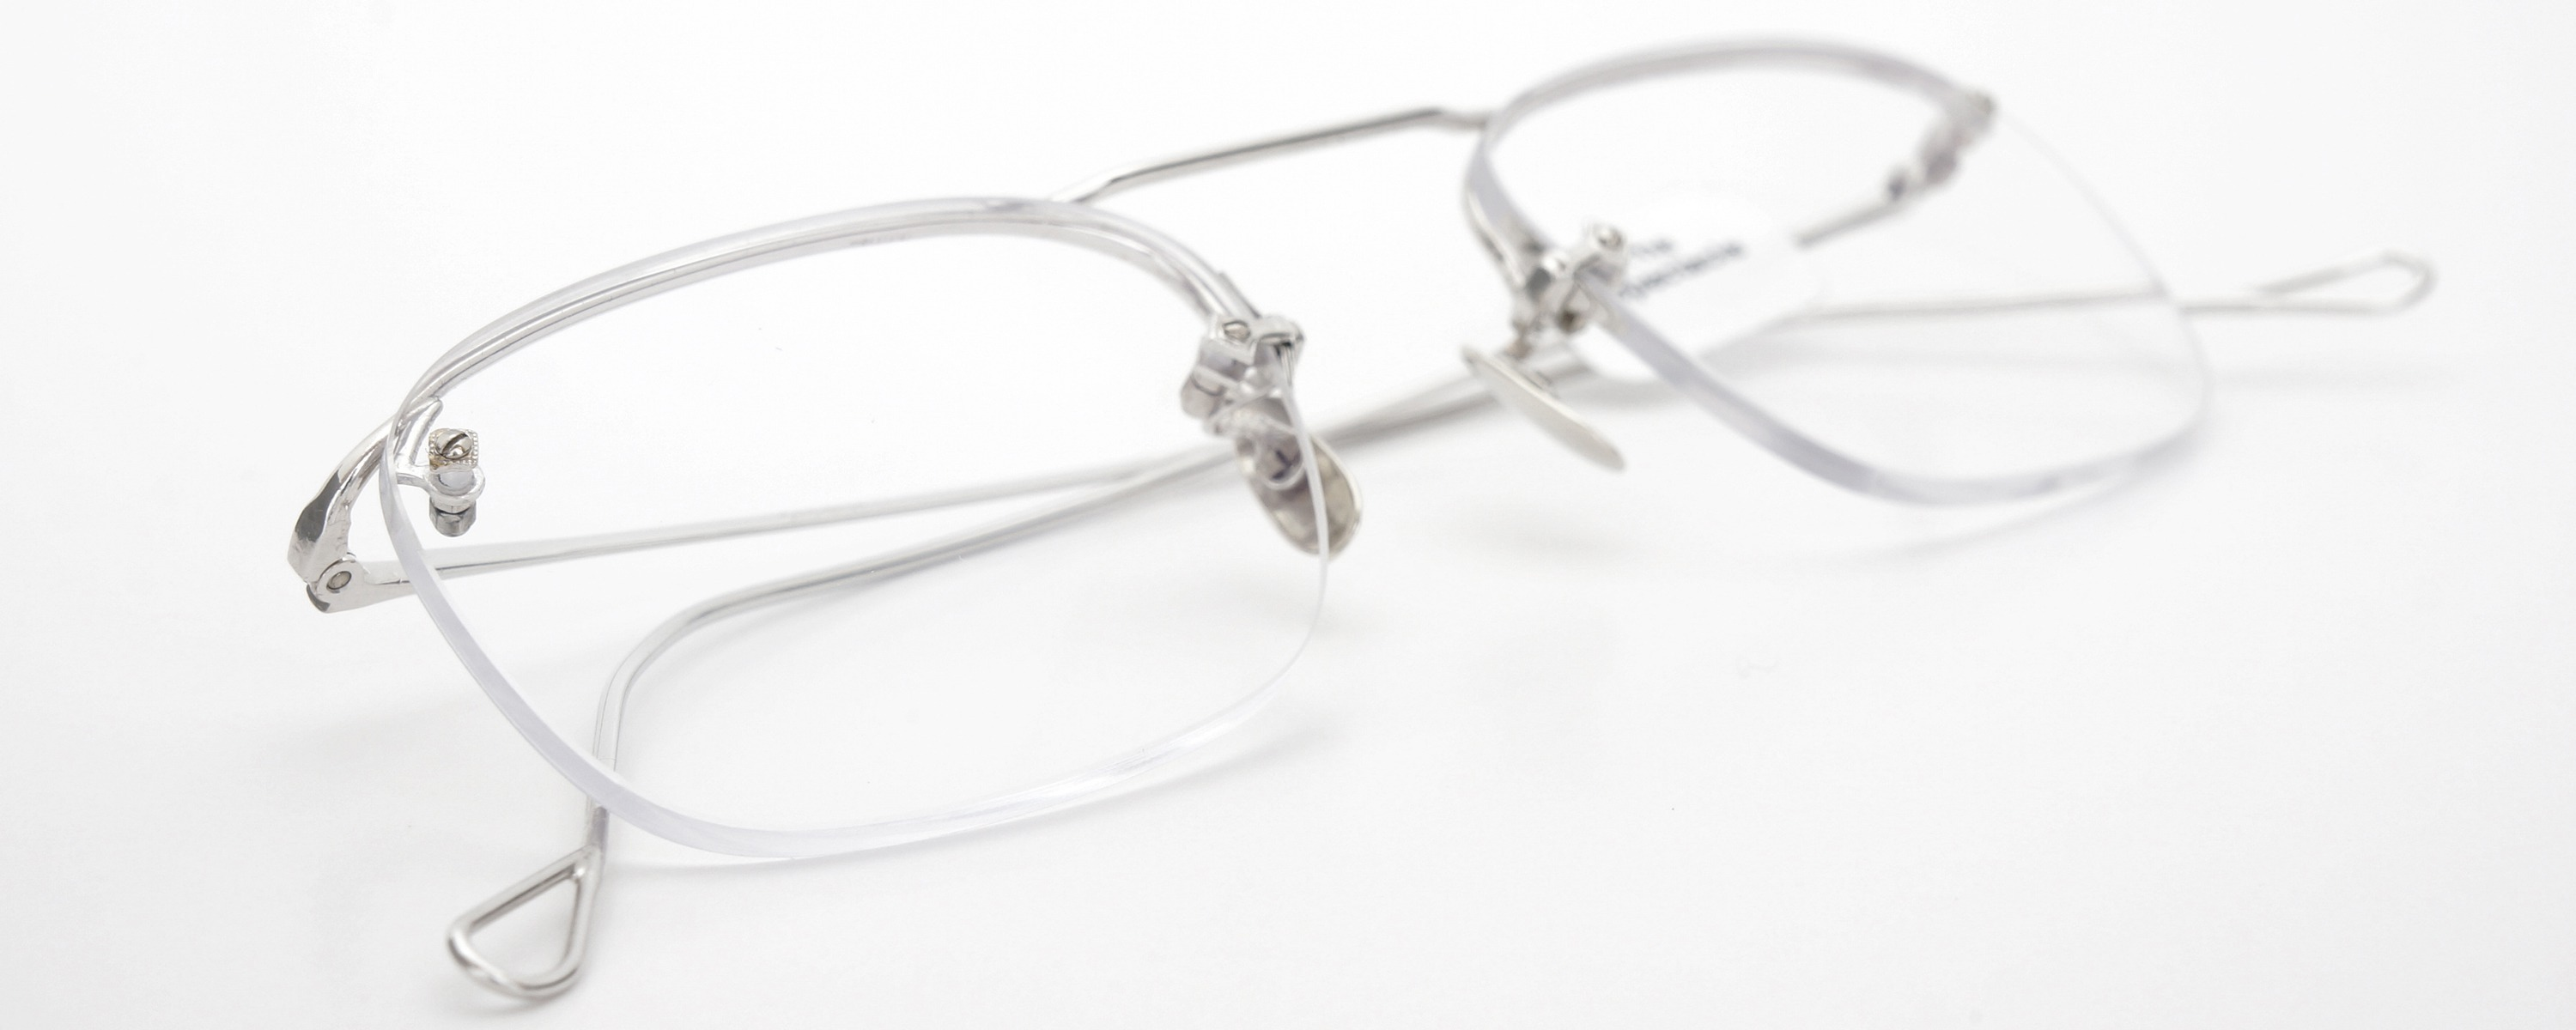 The Spectacle メガネ 1940 American Optical Everjax Bar Sterling WG 12kPads 49-21 イメージ14